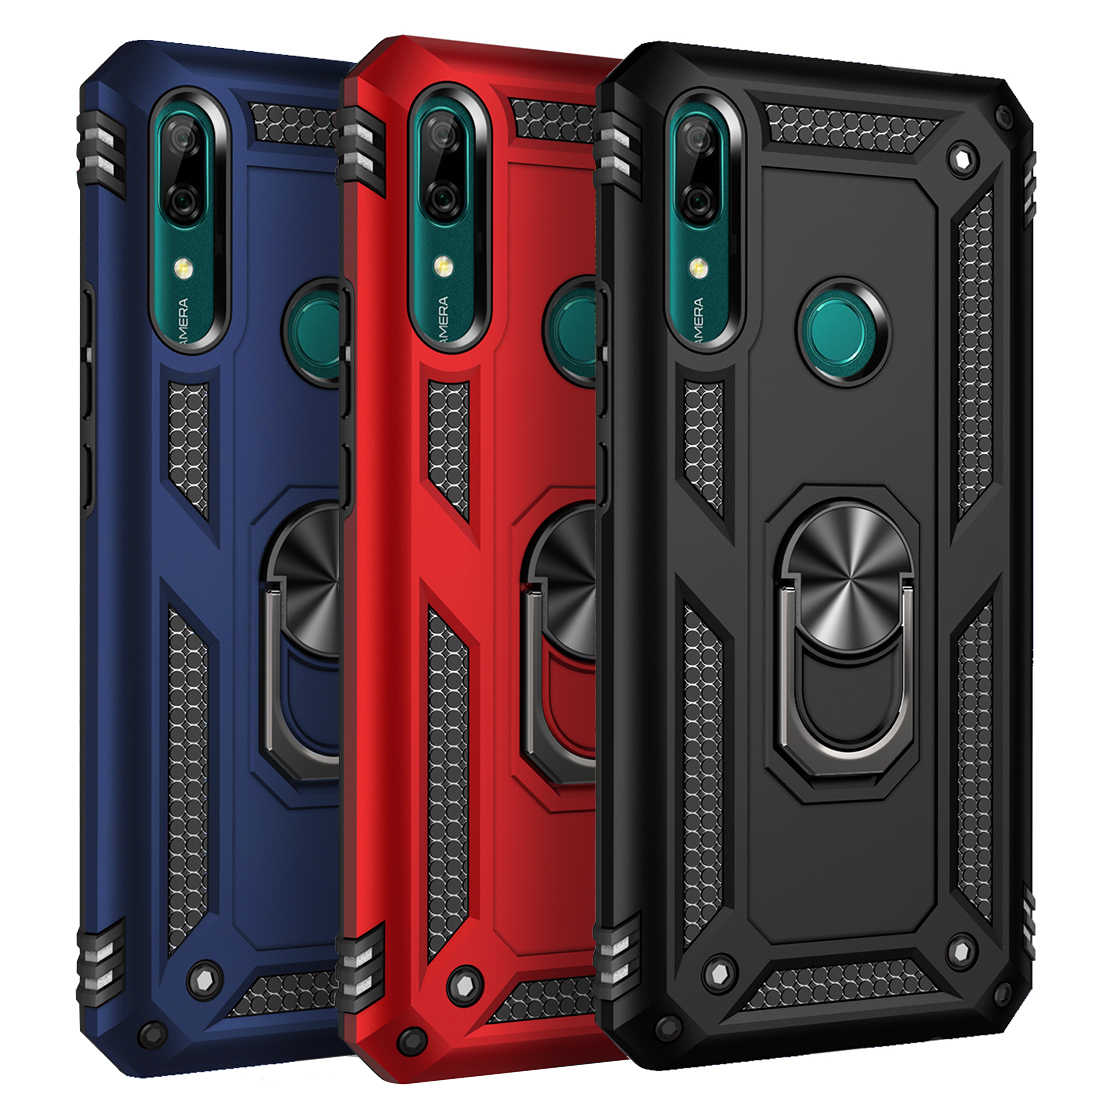 Case For Huawei P Smart Z Case Shockproof Bumper Silicon Cover For Huawei P Smart Z 2019 Case Huawei P Smart Z STK-LX1 PSmartZ